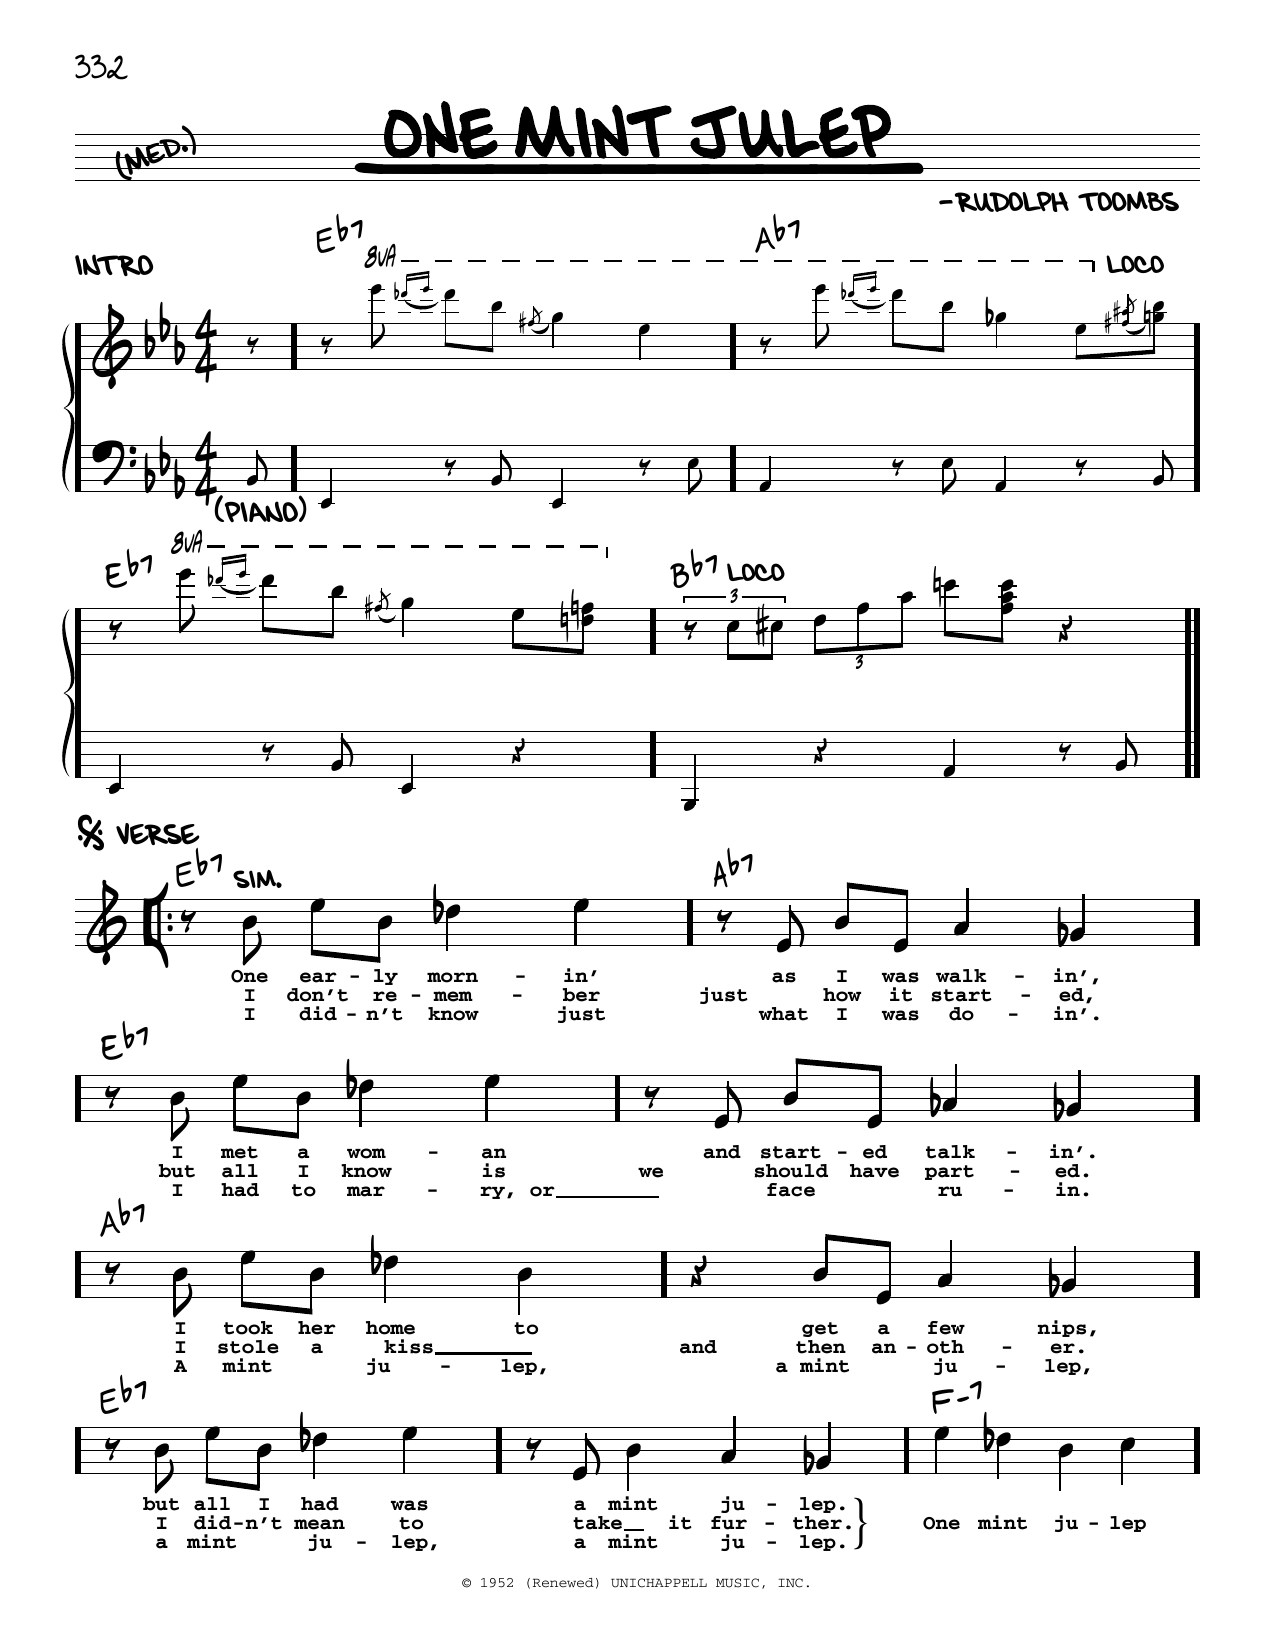 The Clovers One Mint Julep sheet music notes printable PDF score